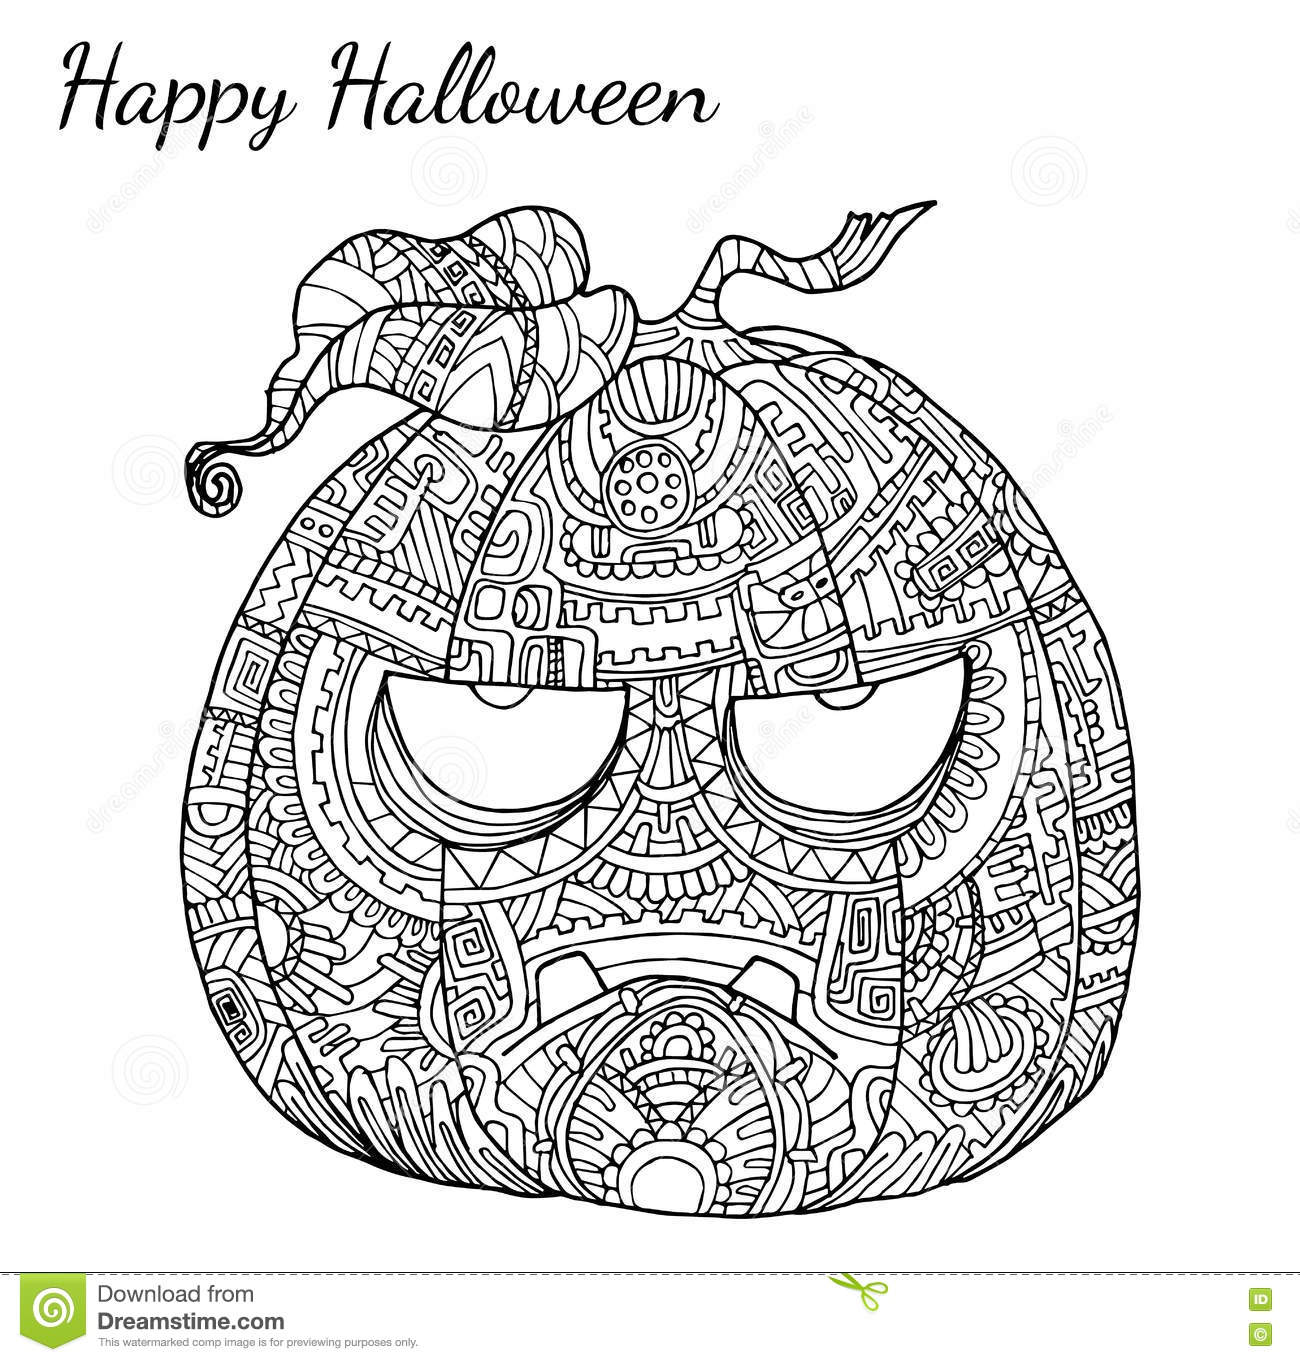 Pumpkin zentangle vector in halloween stock vector for Pumpkin coloring pages for adults